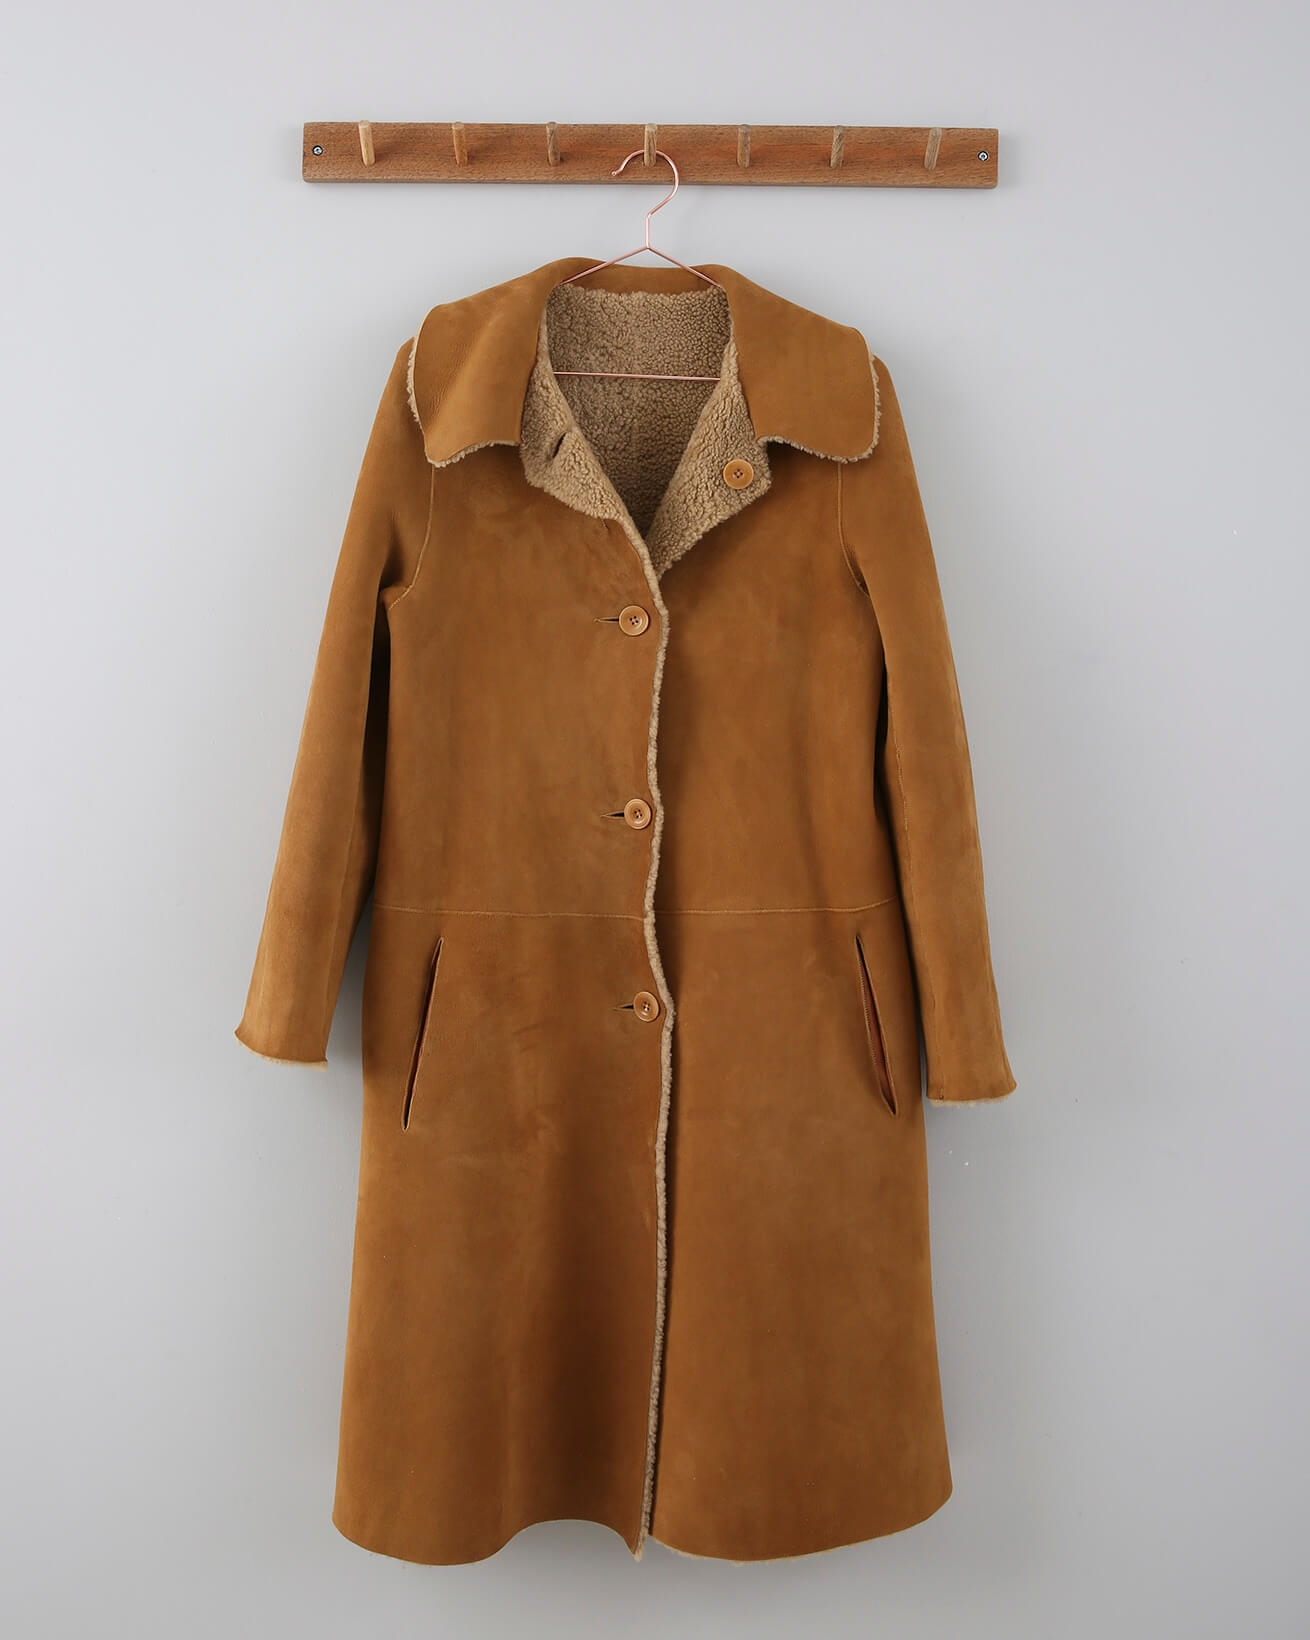 Teddy Coat - Size 10 - Ginger - 677